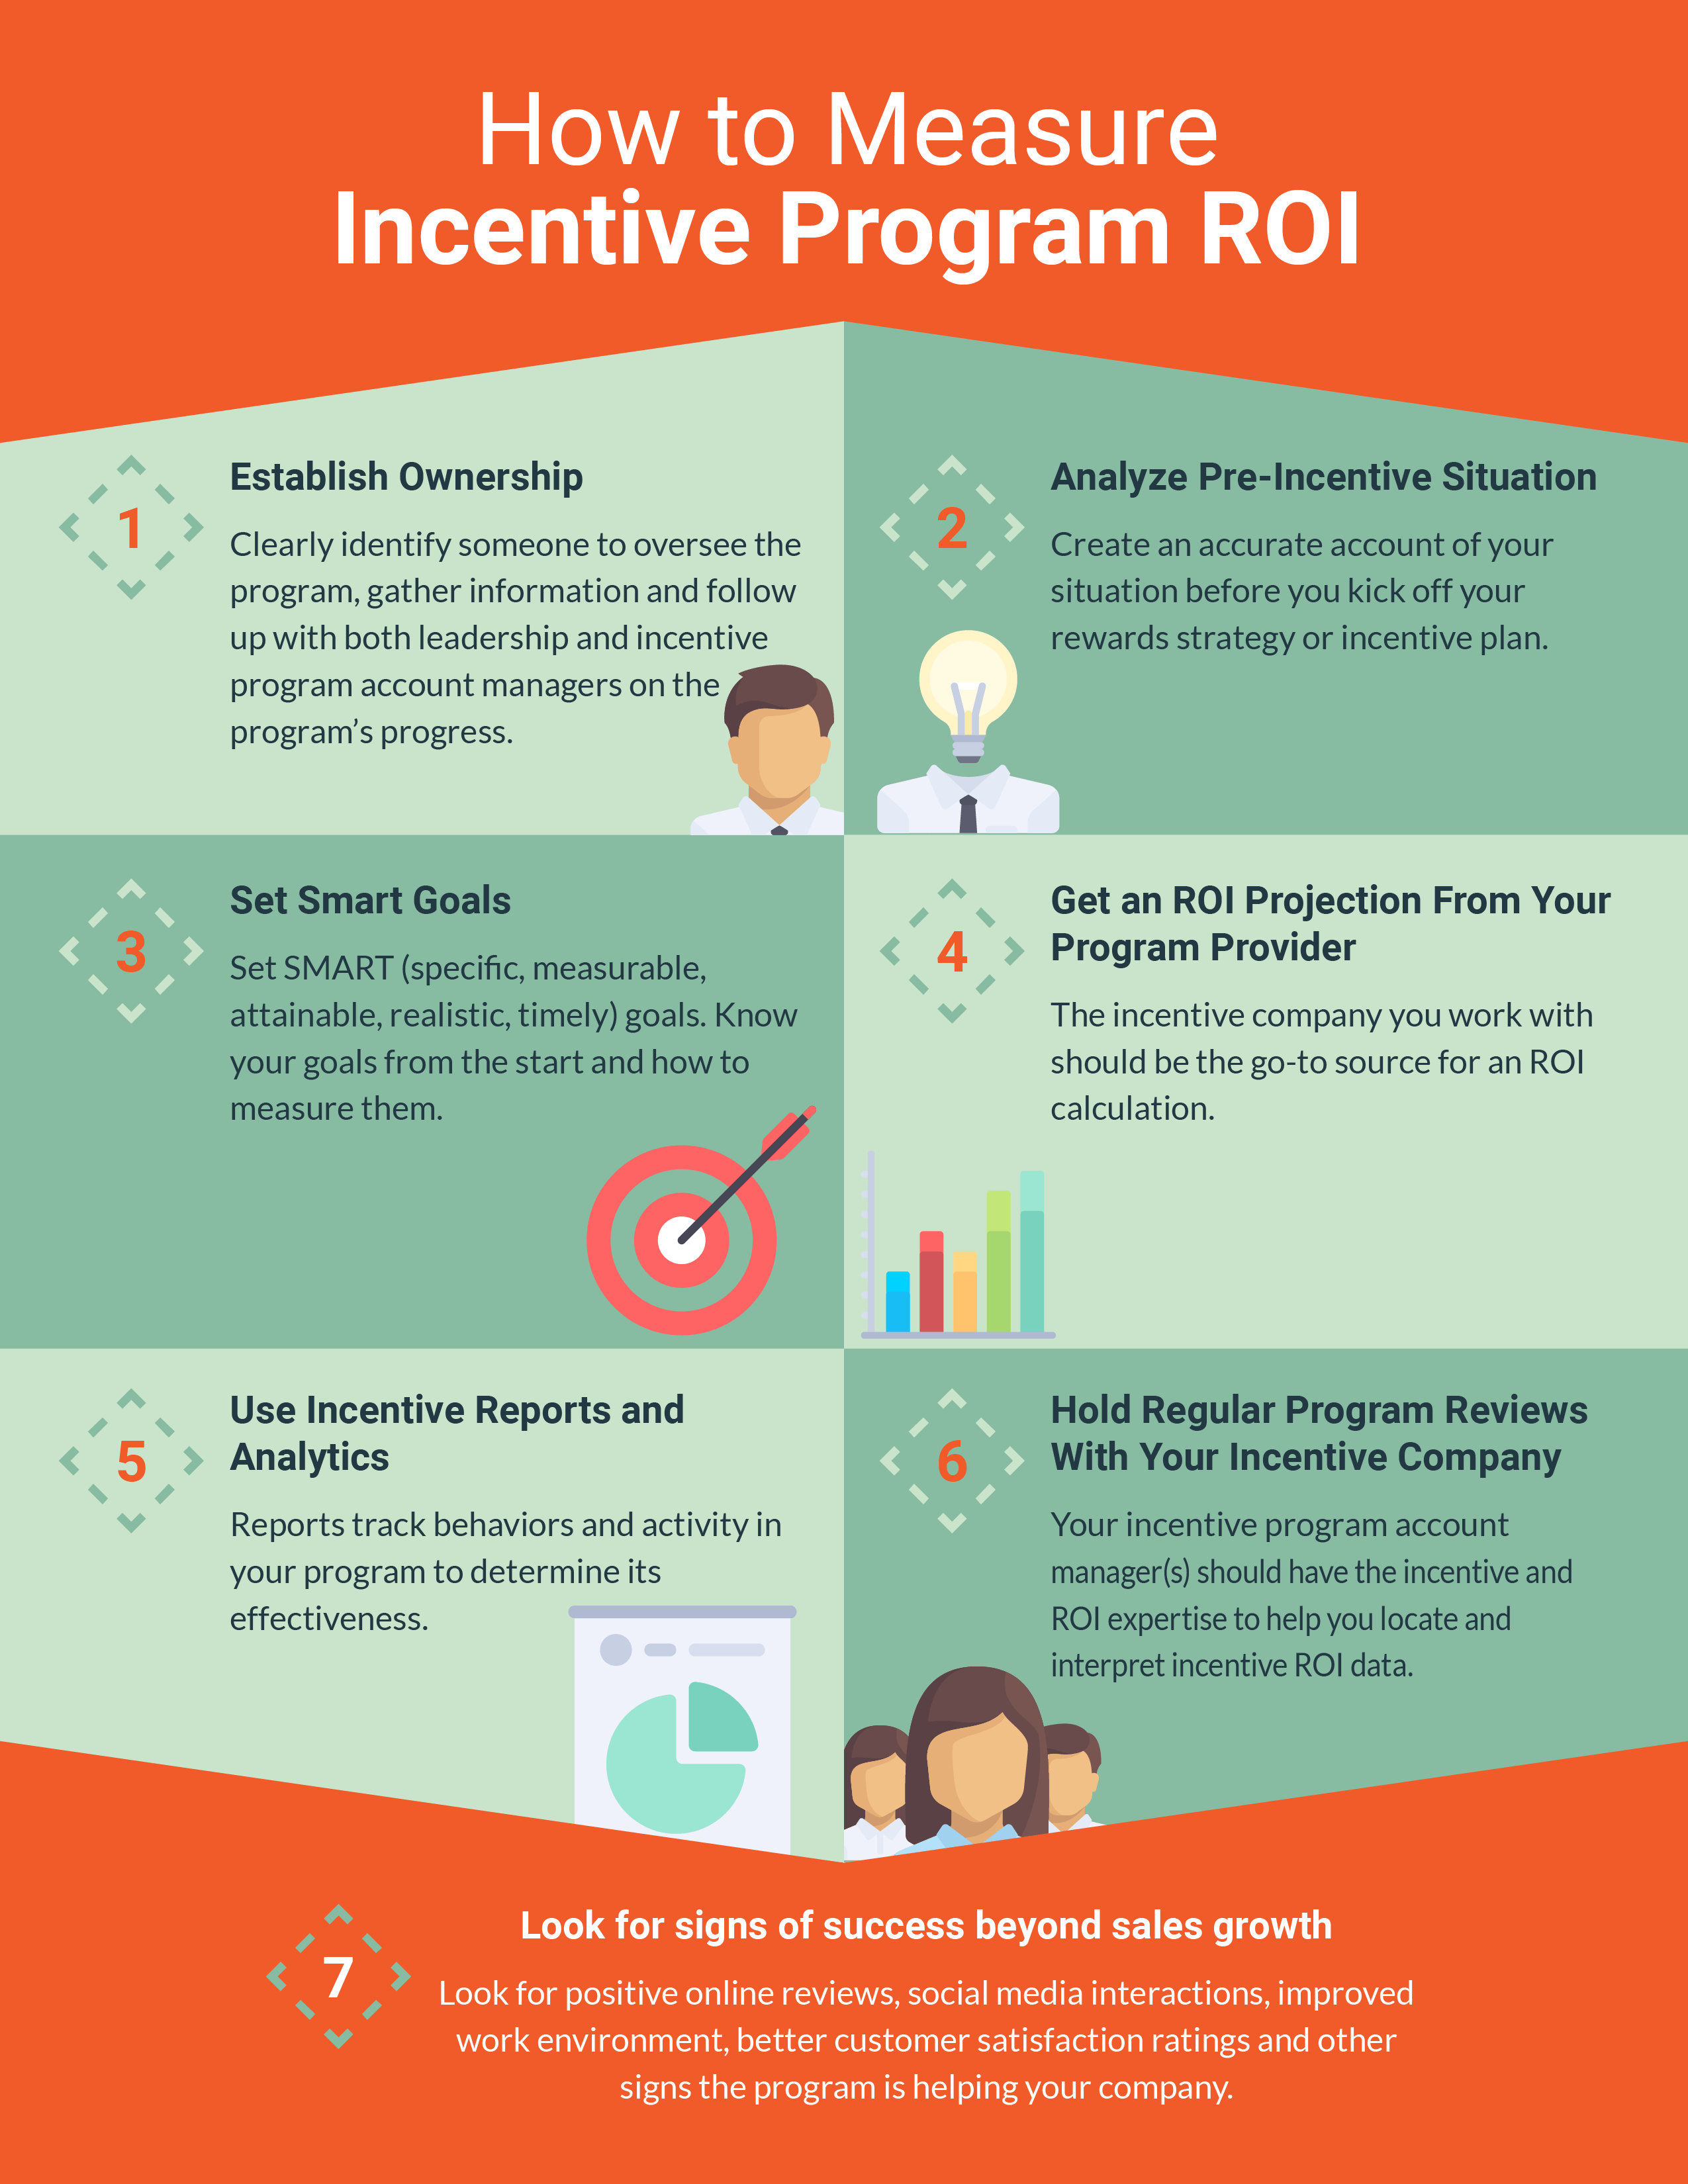 how to measure incentive program ROI